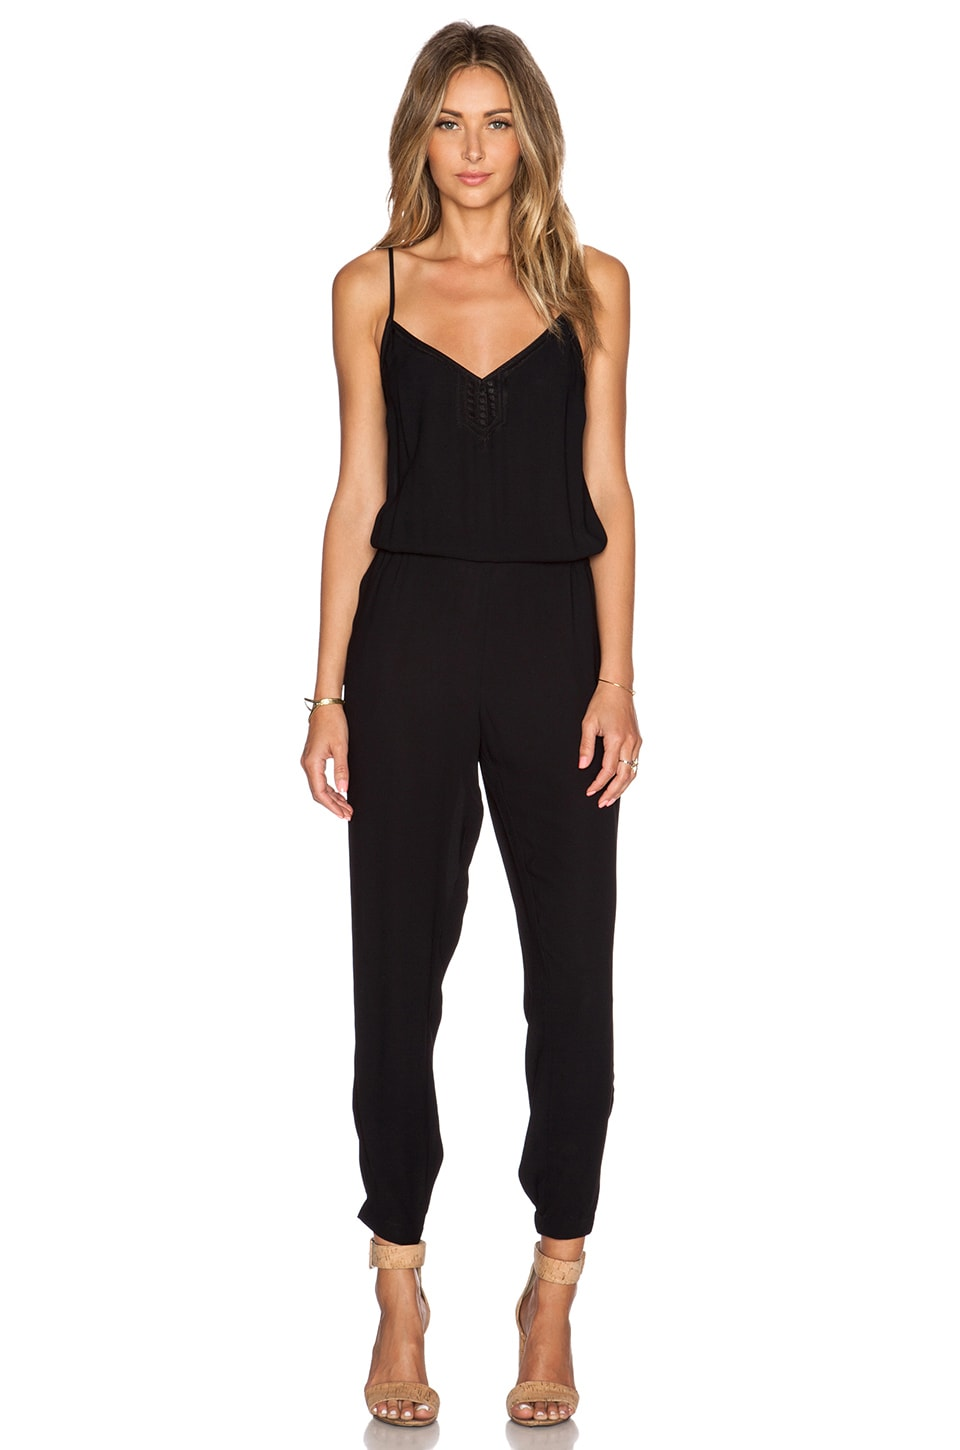 Twelfth Street By Cynthia Vincent Indian Jumpsuit in Black